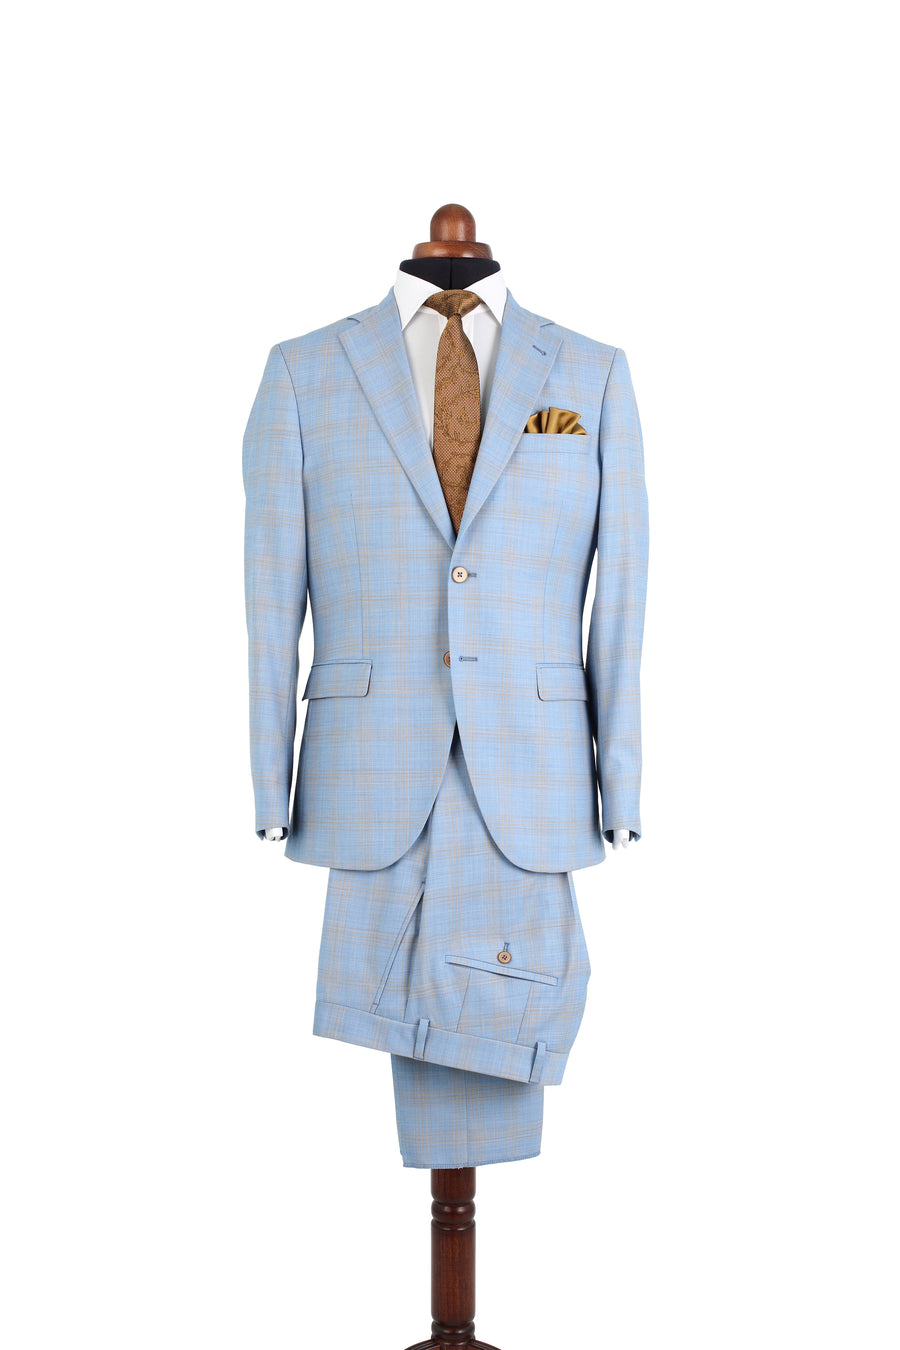 SUMMER BLUE PLAID SUIT